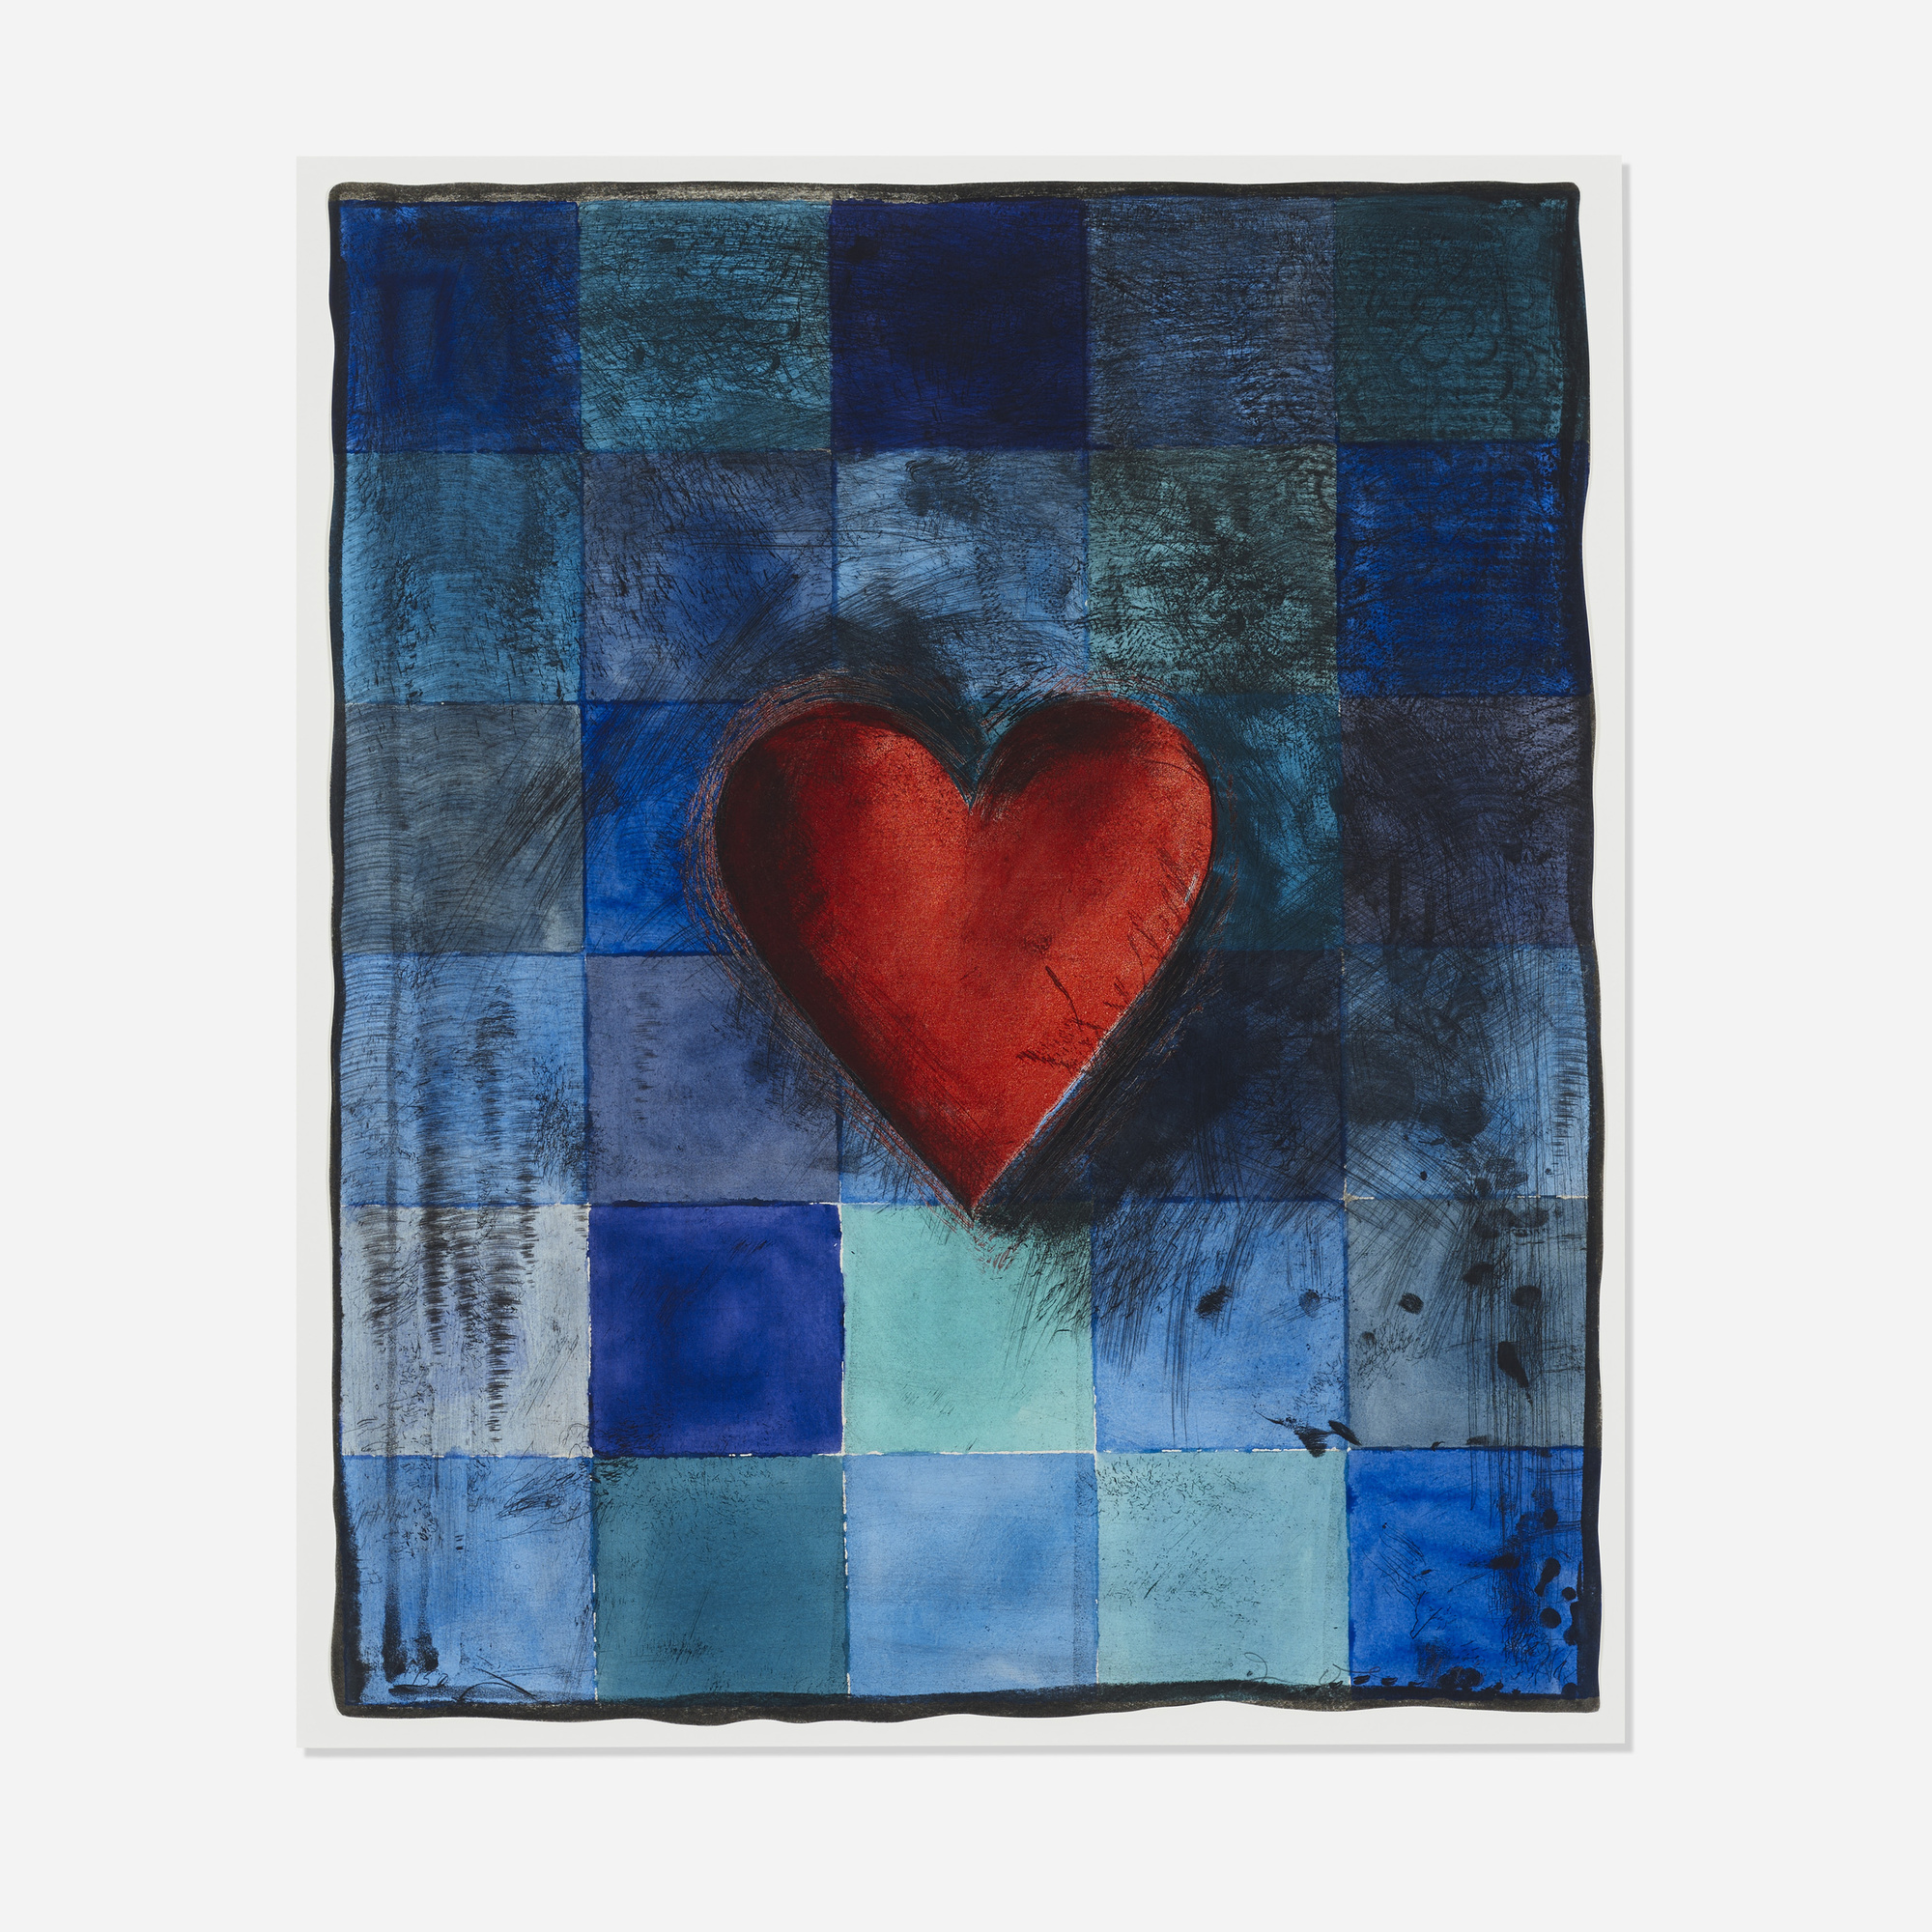 162: Jim Dine / Hart in Blu (1 of 1)